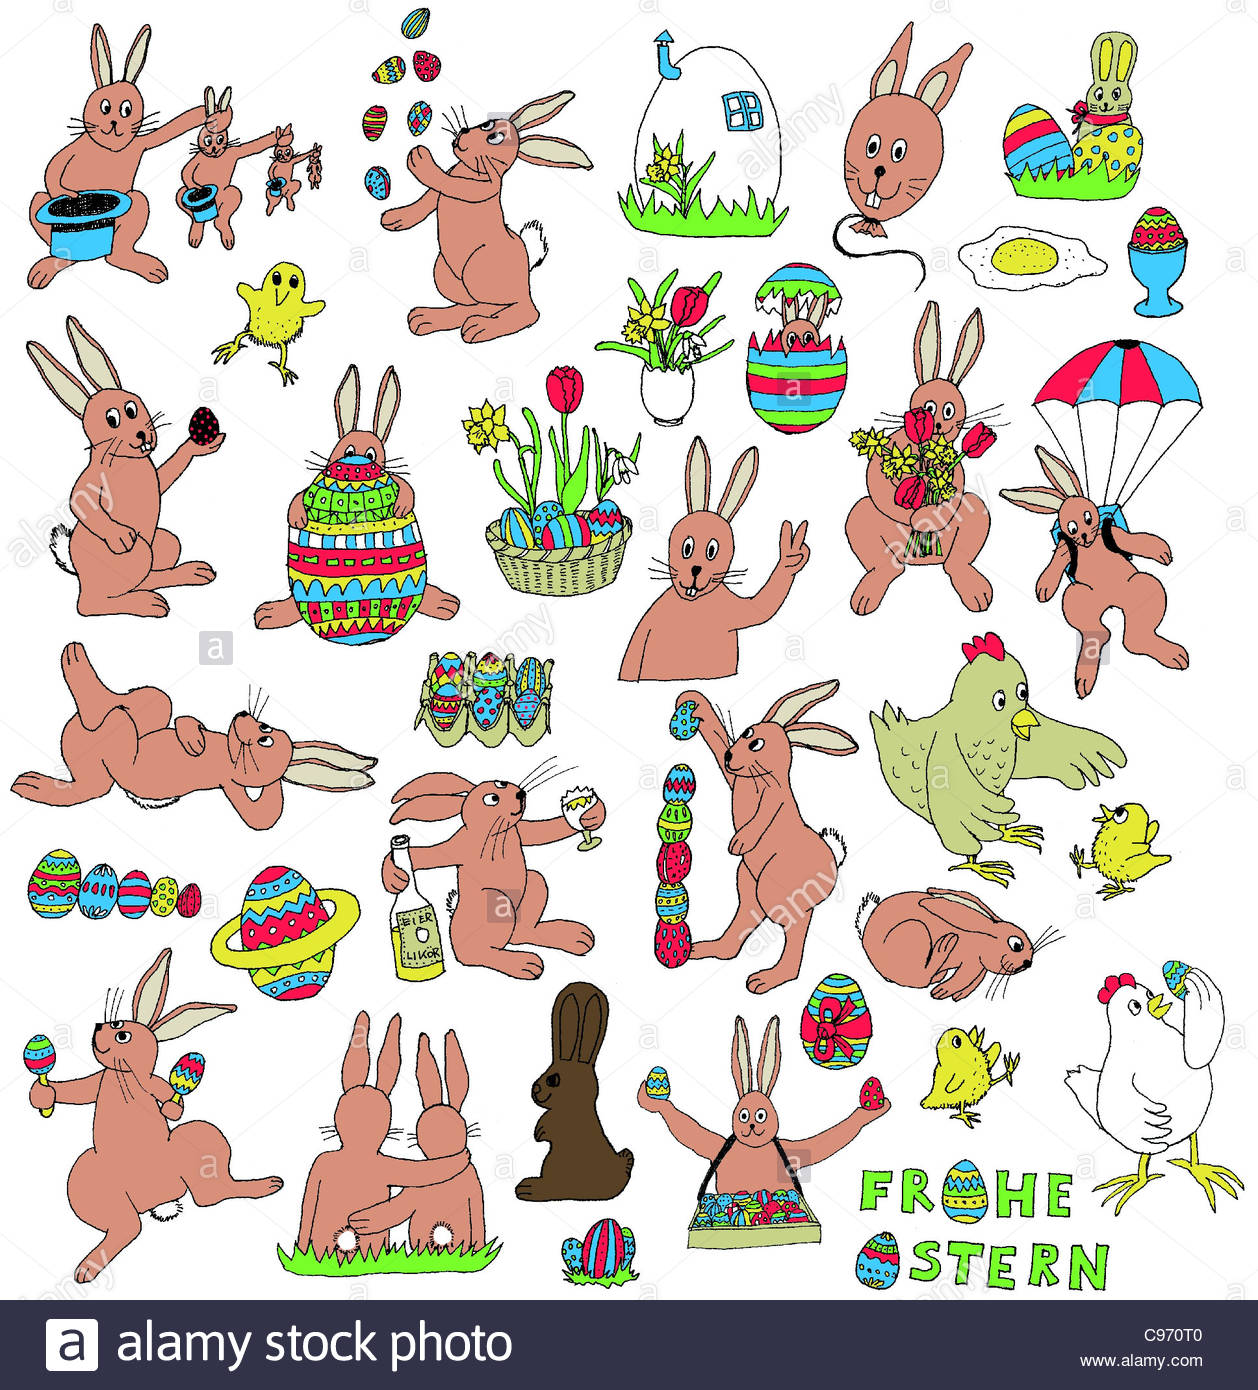 Easter Bunny Embroidery Designs Easter Bunny Stickers Stickers Stock